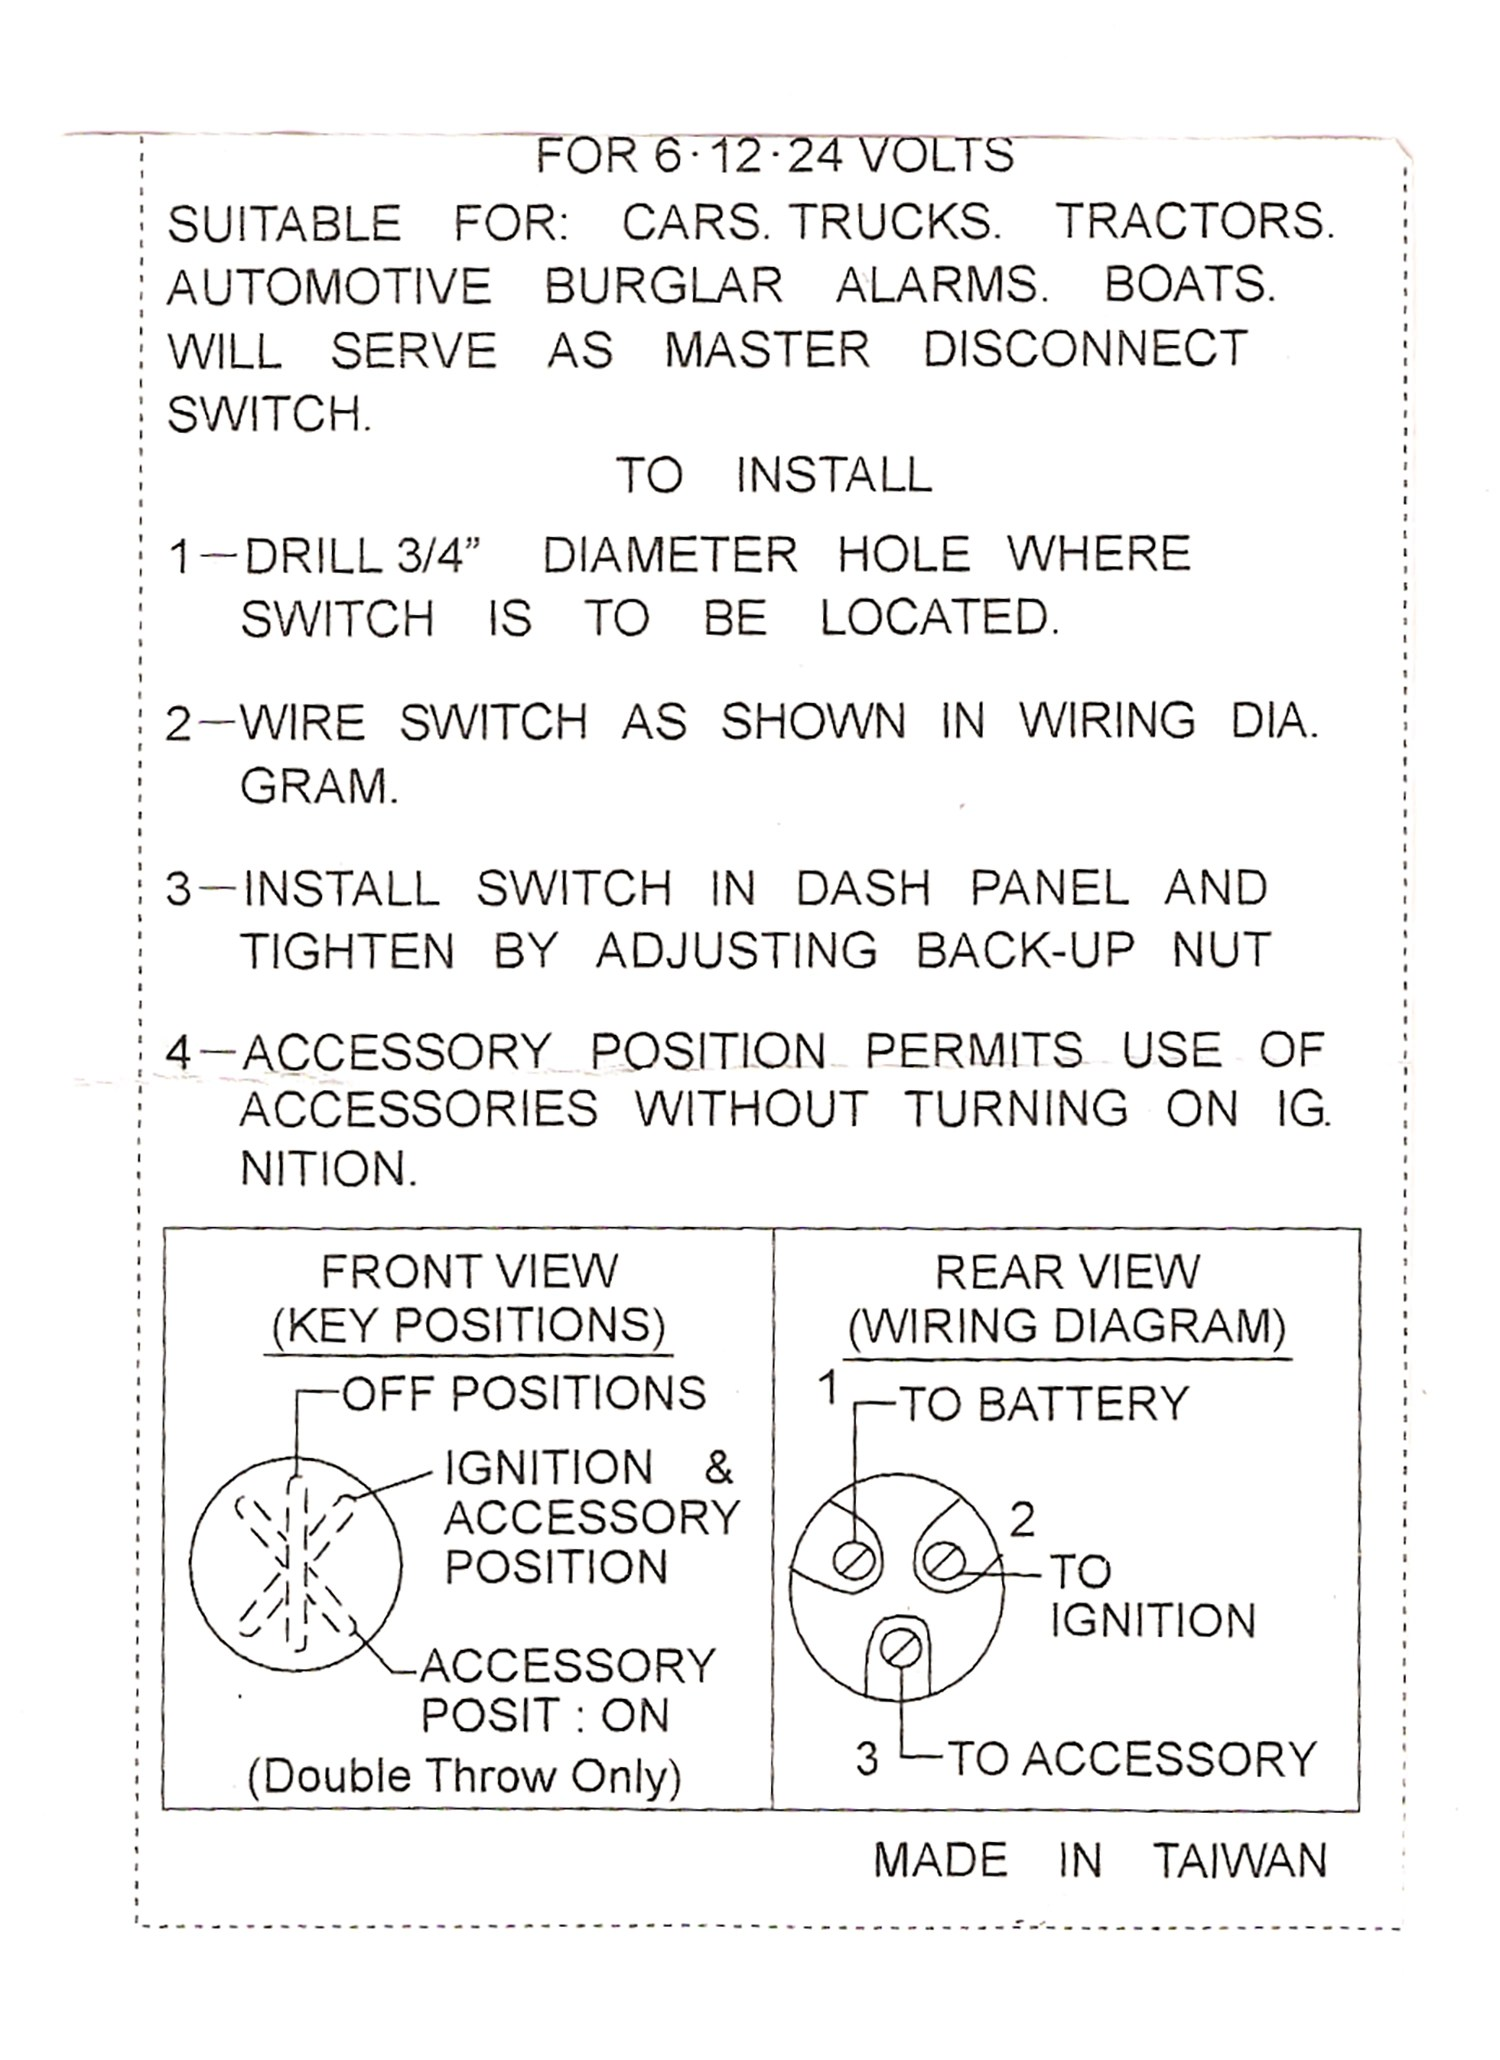 emgo universal ignition switch 3 position 40 64000 wiring diagram universal ignition switch wiring universal ignition switch wiring [ 1500 x 2060 Pixel ]